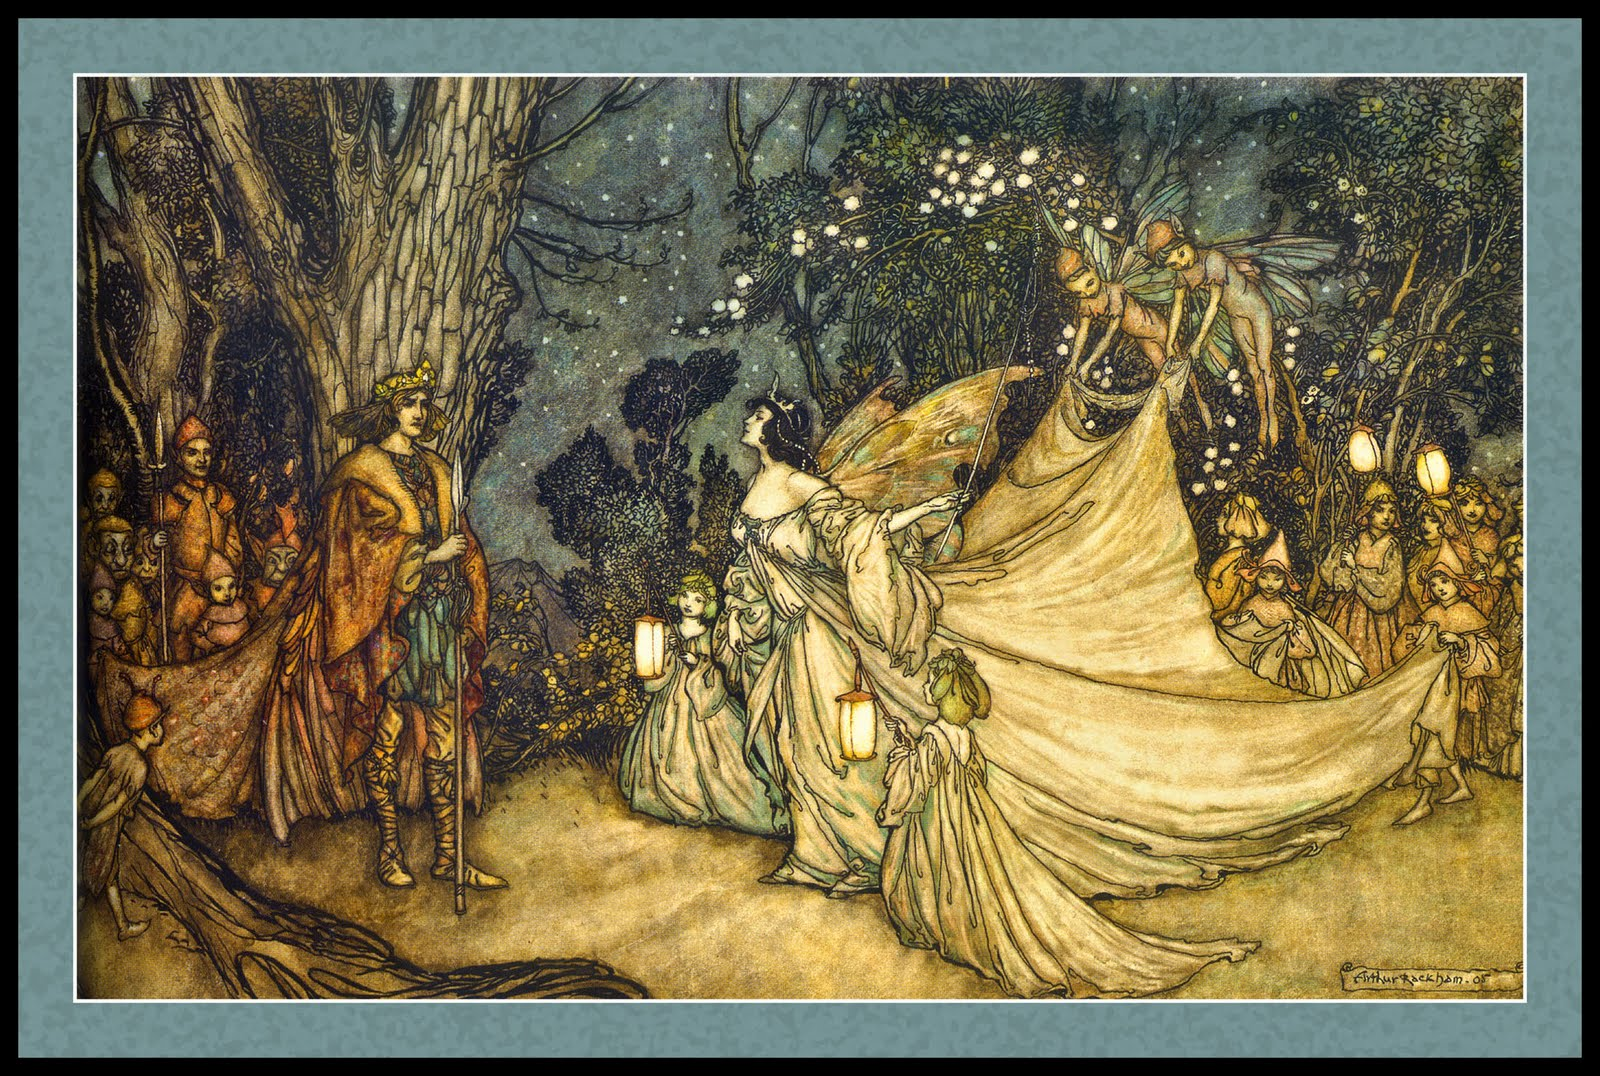 Arthur Rackham Art Schools Arthurrackham Illustration Children Midsummer Night Dreams